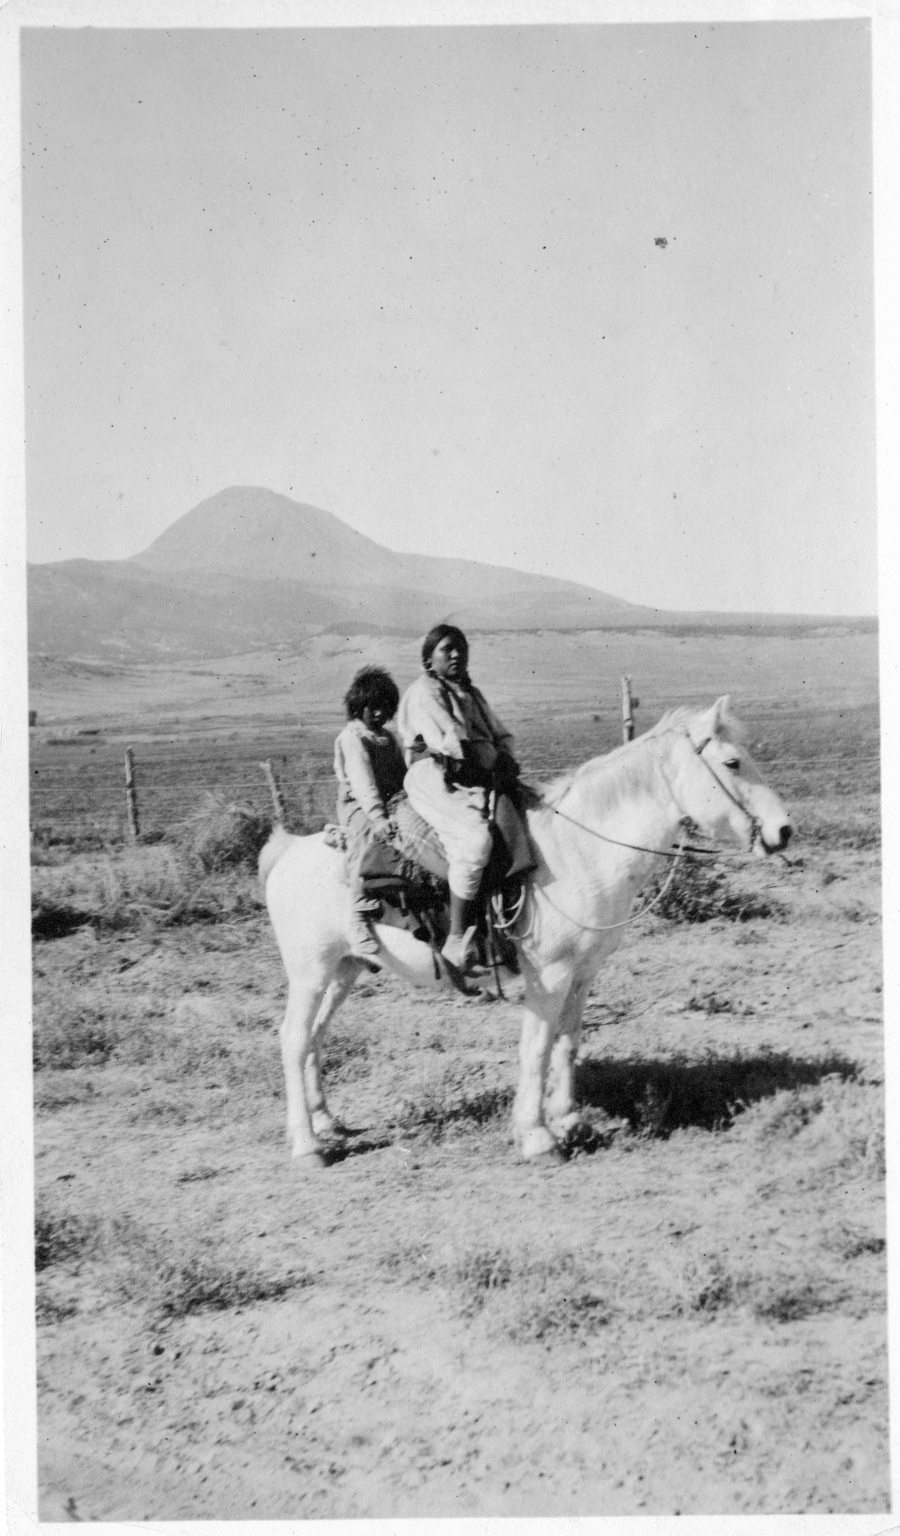 Portrait of Ute Mountain Ute woman and boy on a horse